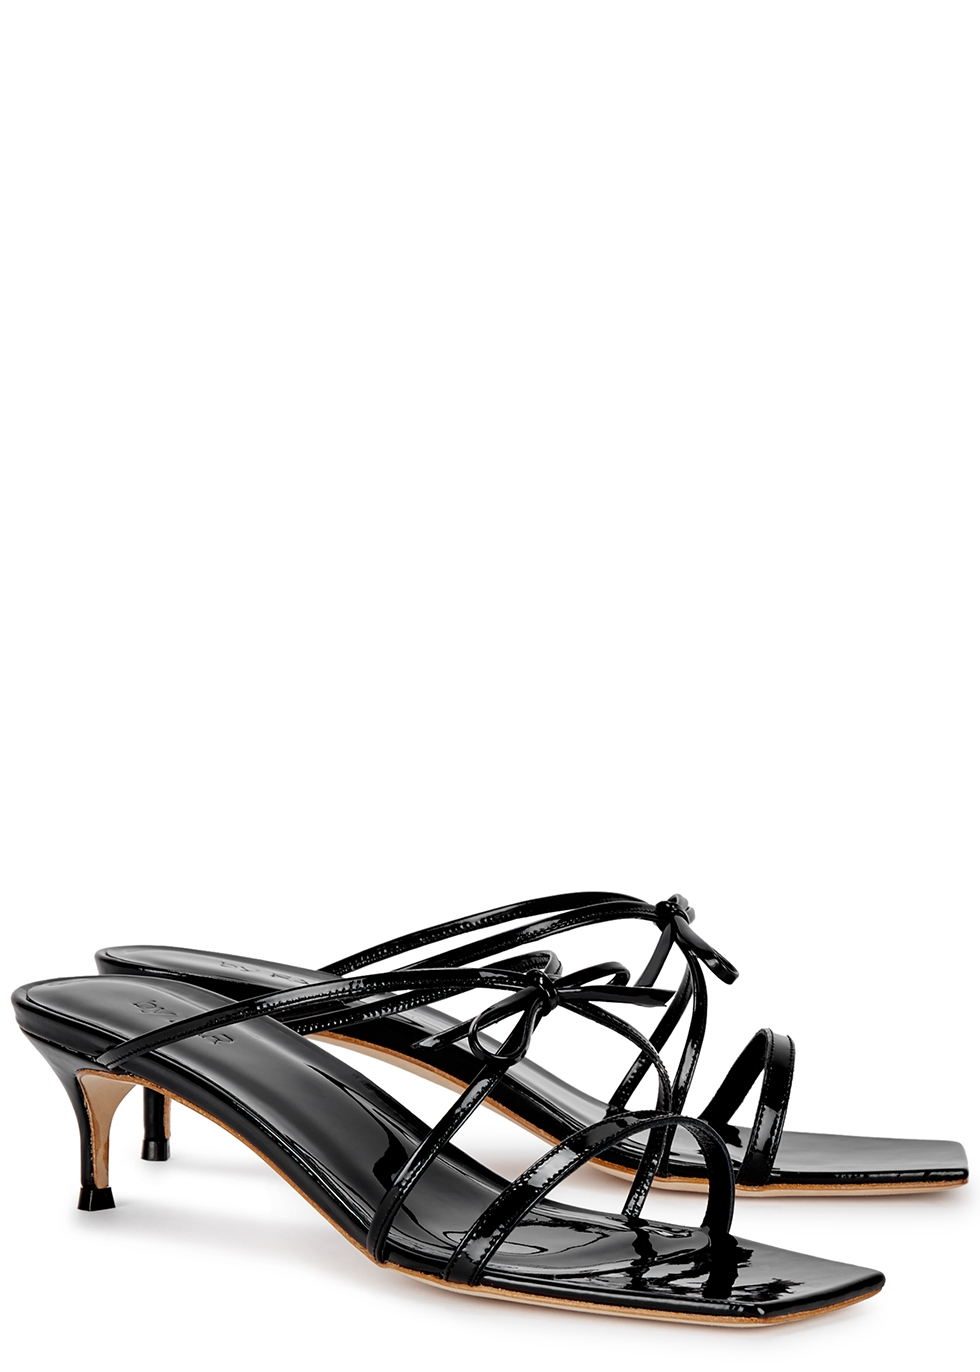 January 50 black patent leather sandals - BY FAR